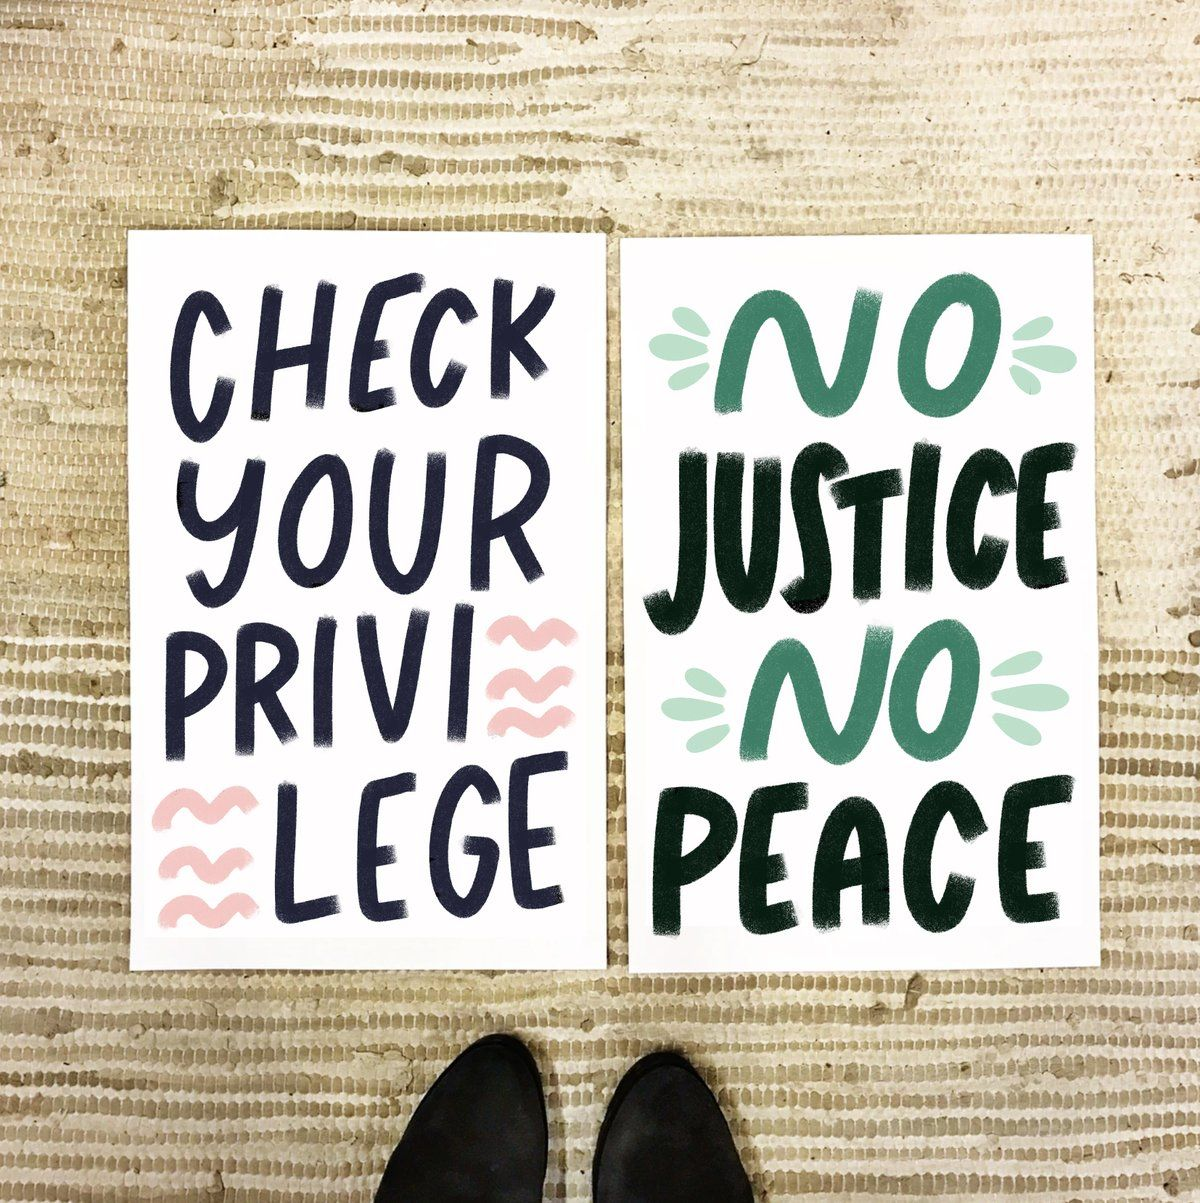 Free 11x17 Printable Black Lives Matter Protest Signs In 2020 Black Lives Matter Protest Protest Signs Black Lives Matter